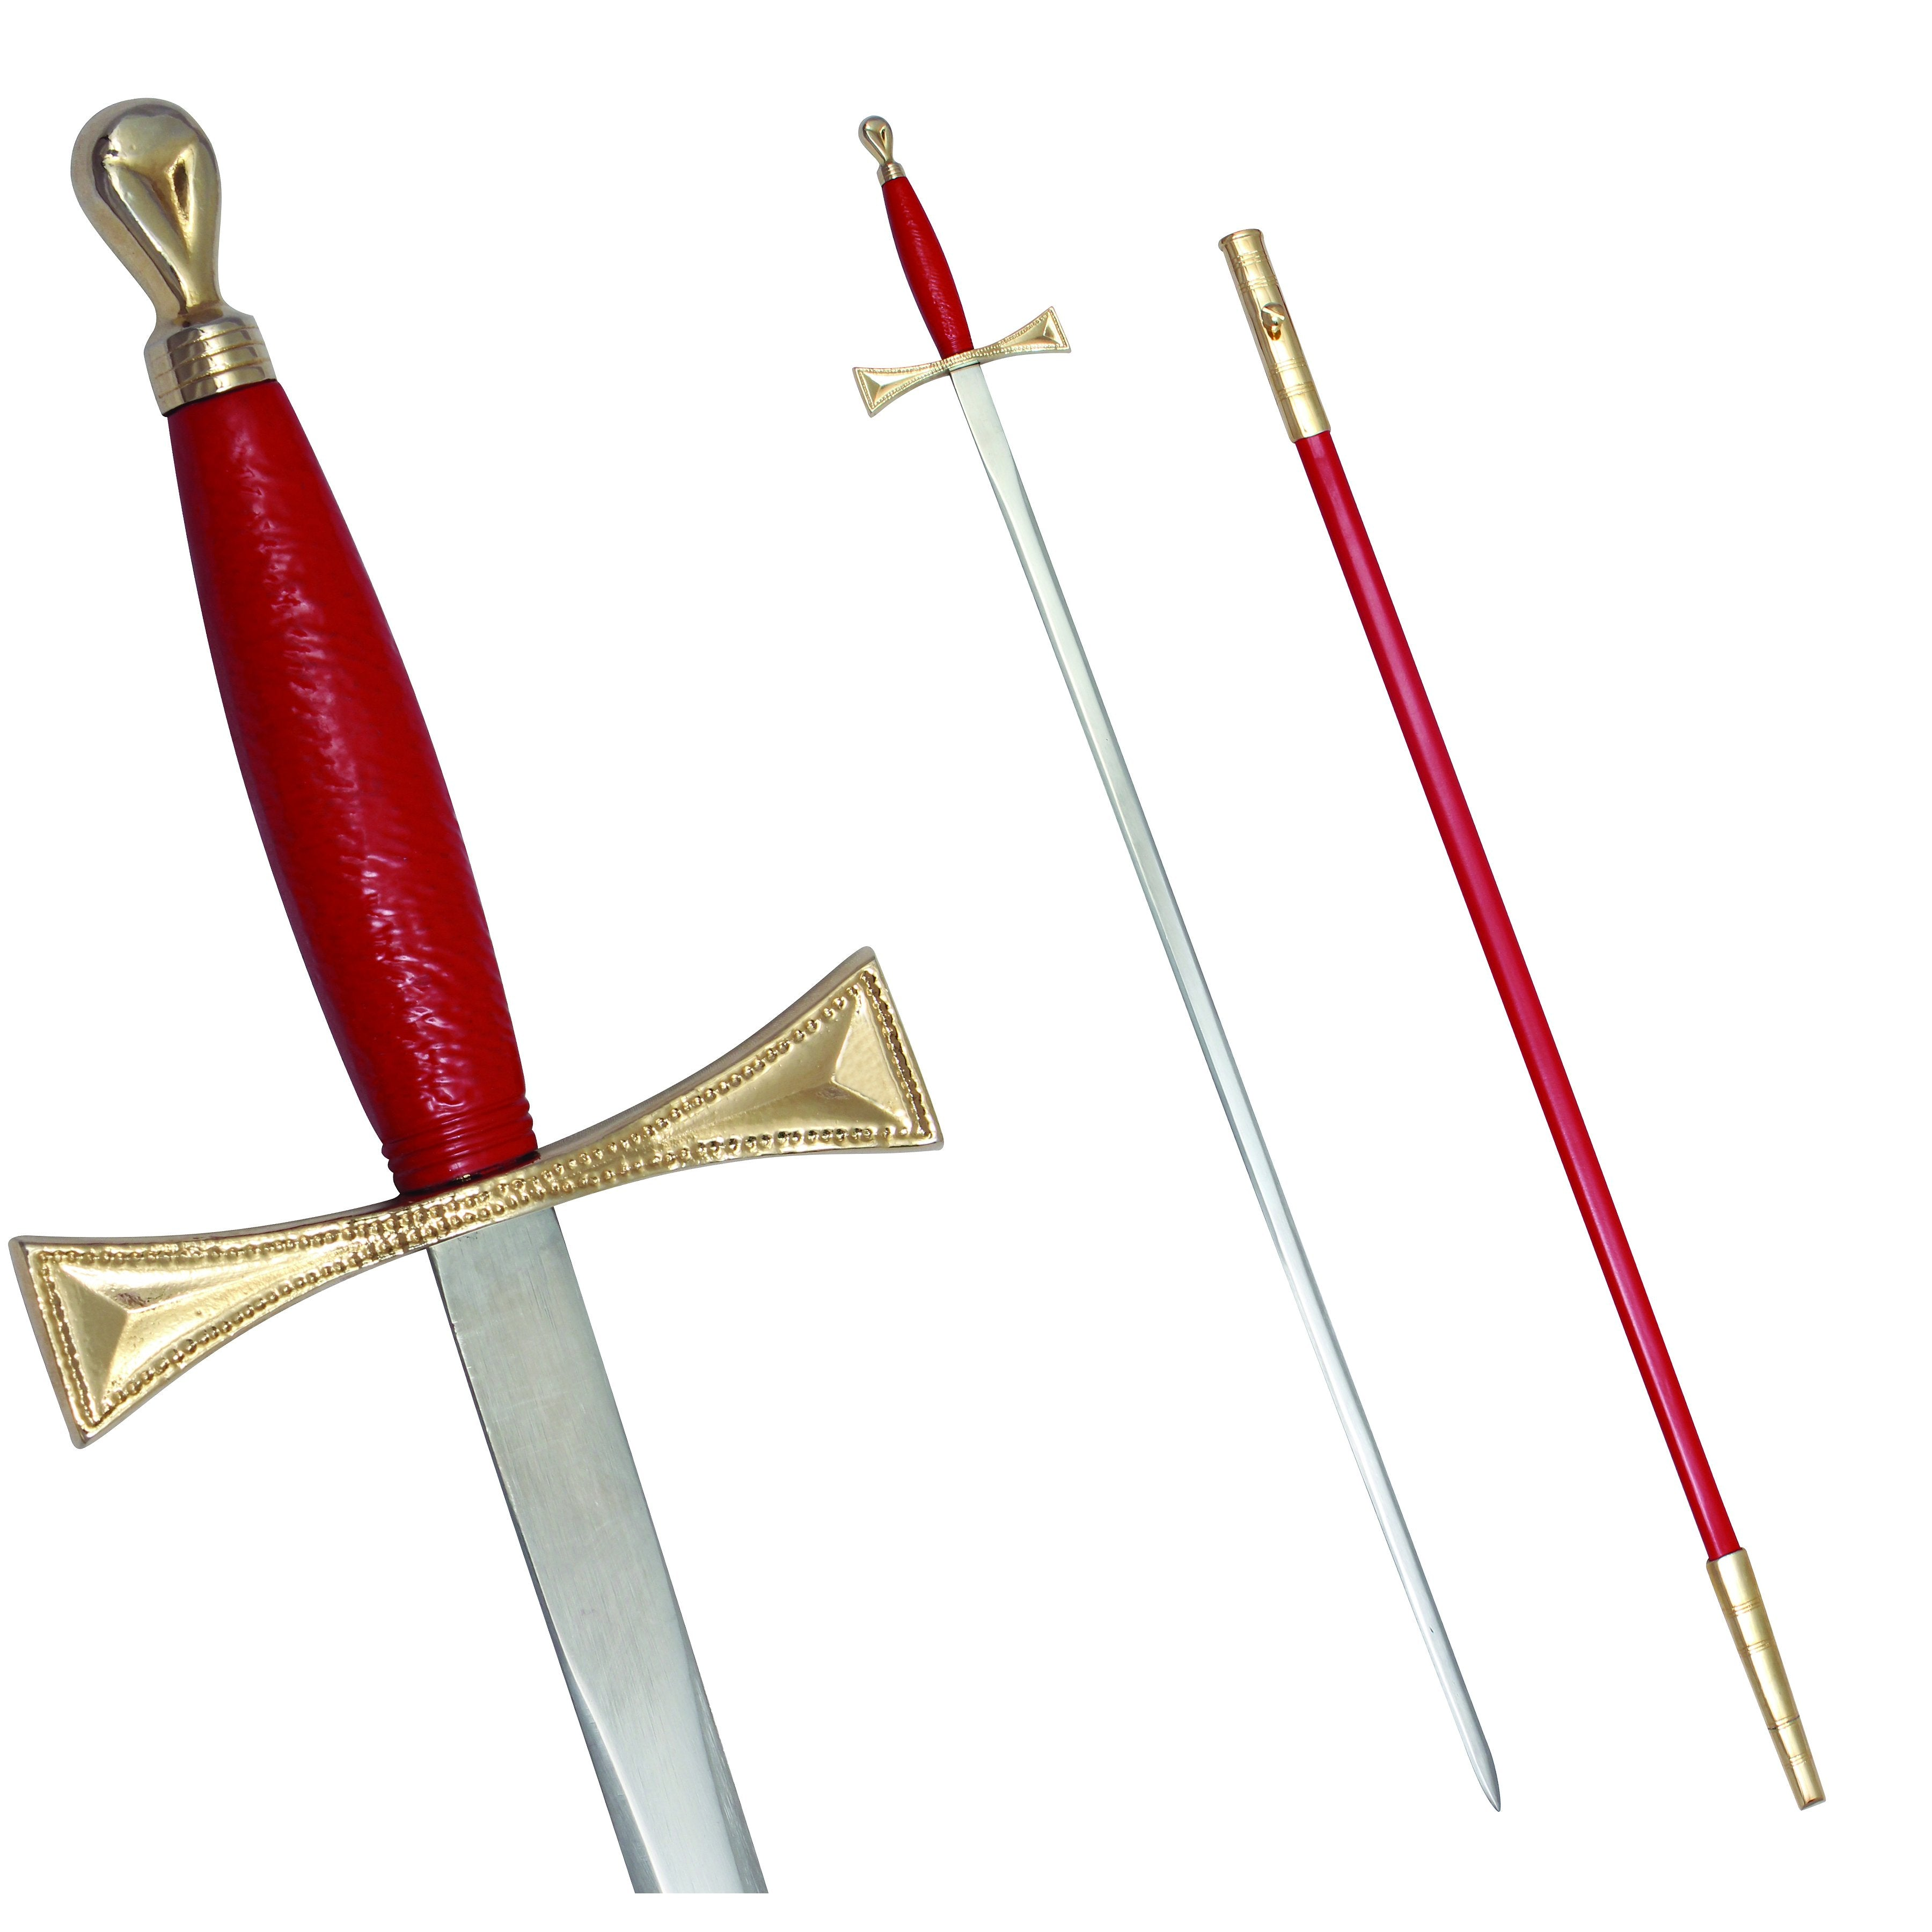 "Masonic Sword with Red Gold Hilt and Red Scabbard 35 3/4"" + Free Case"